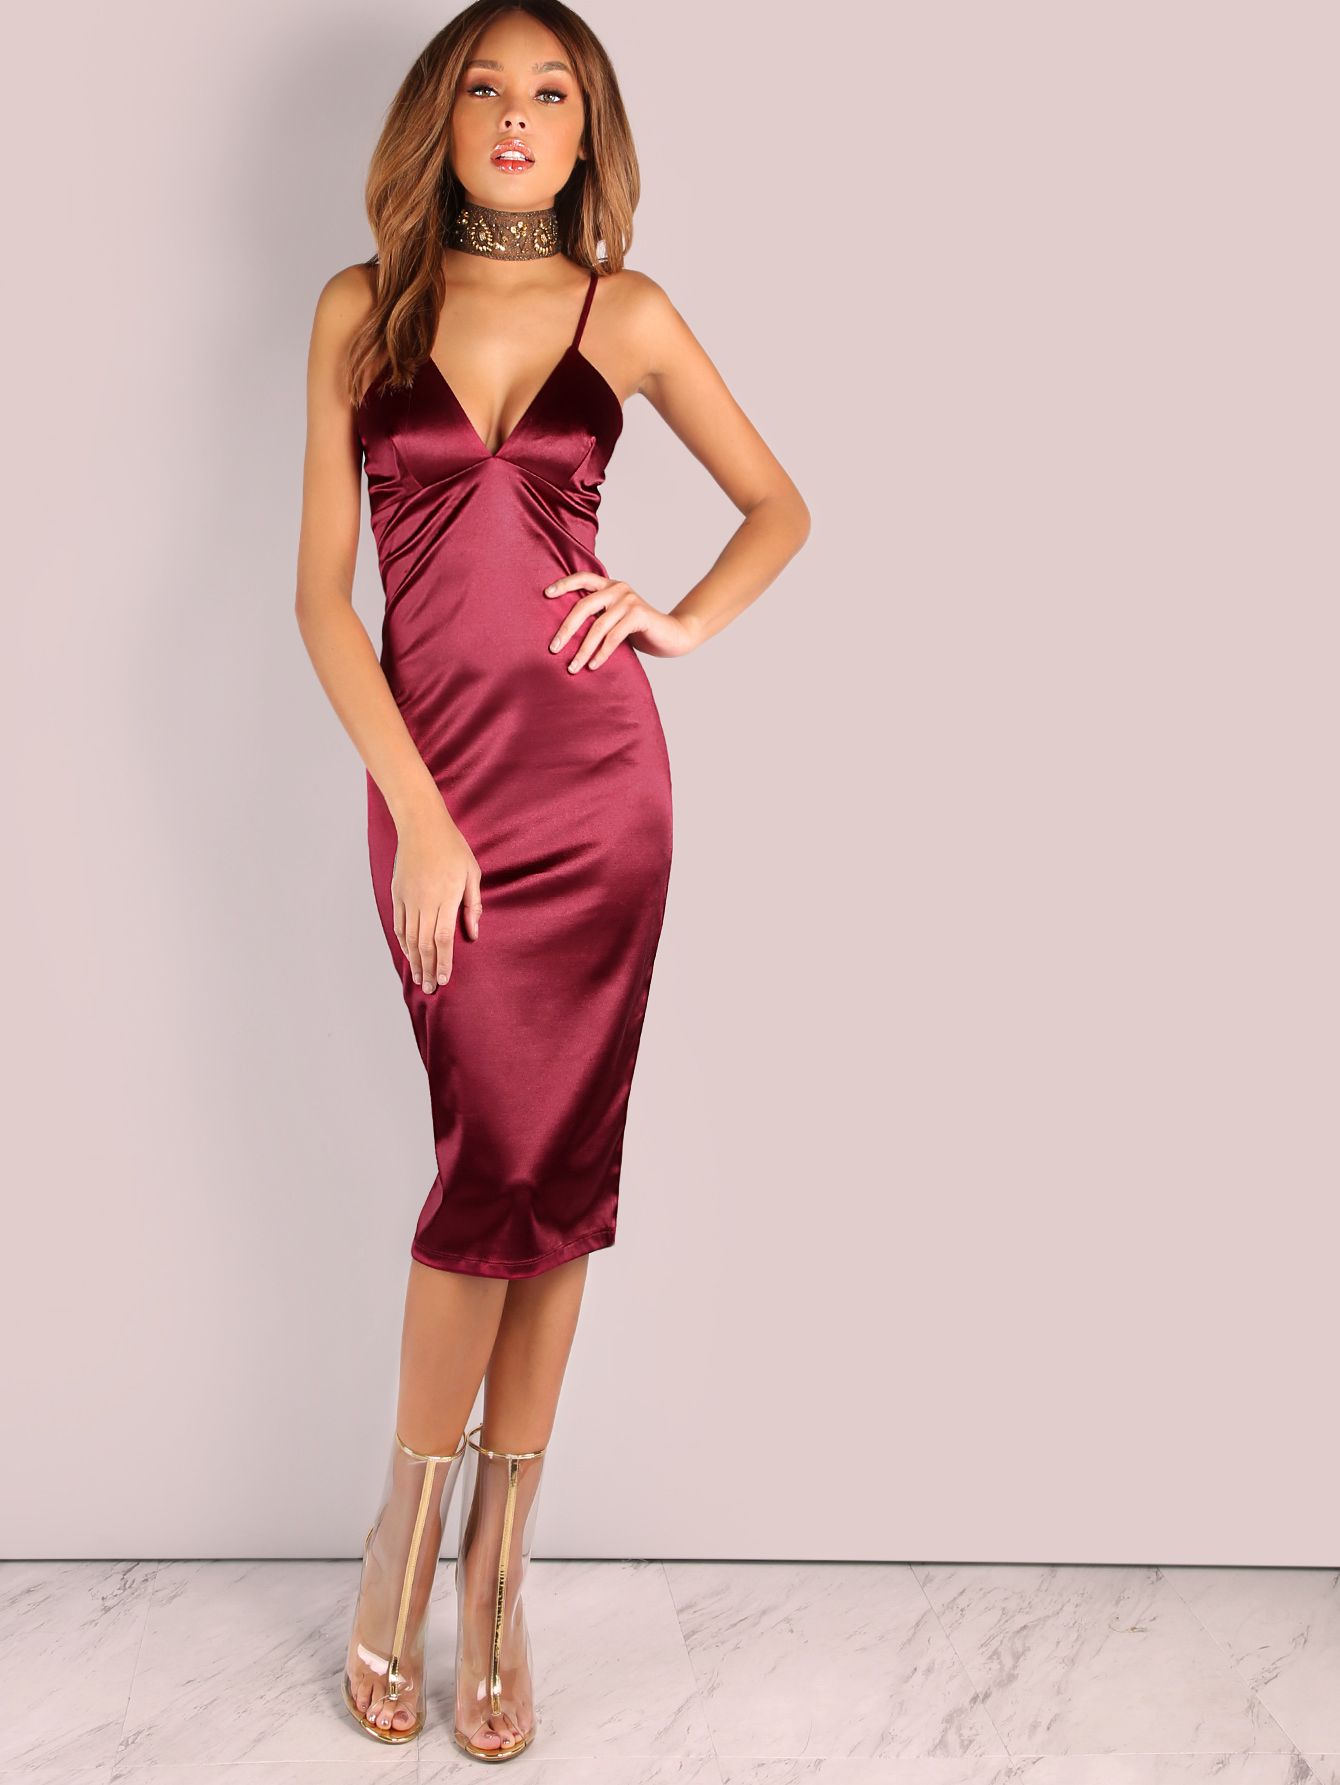 Shop Deep V Satin Bodycon Midi Dress Wine Online Shein Offers Deep V Satin Bodycon Midi Dress Wine More Satin Midi Dress Burgundy Satin Dress Satin Dresses